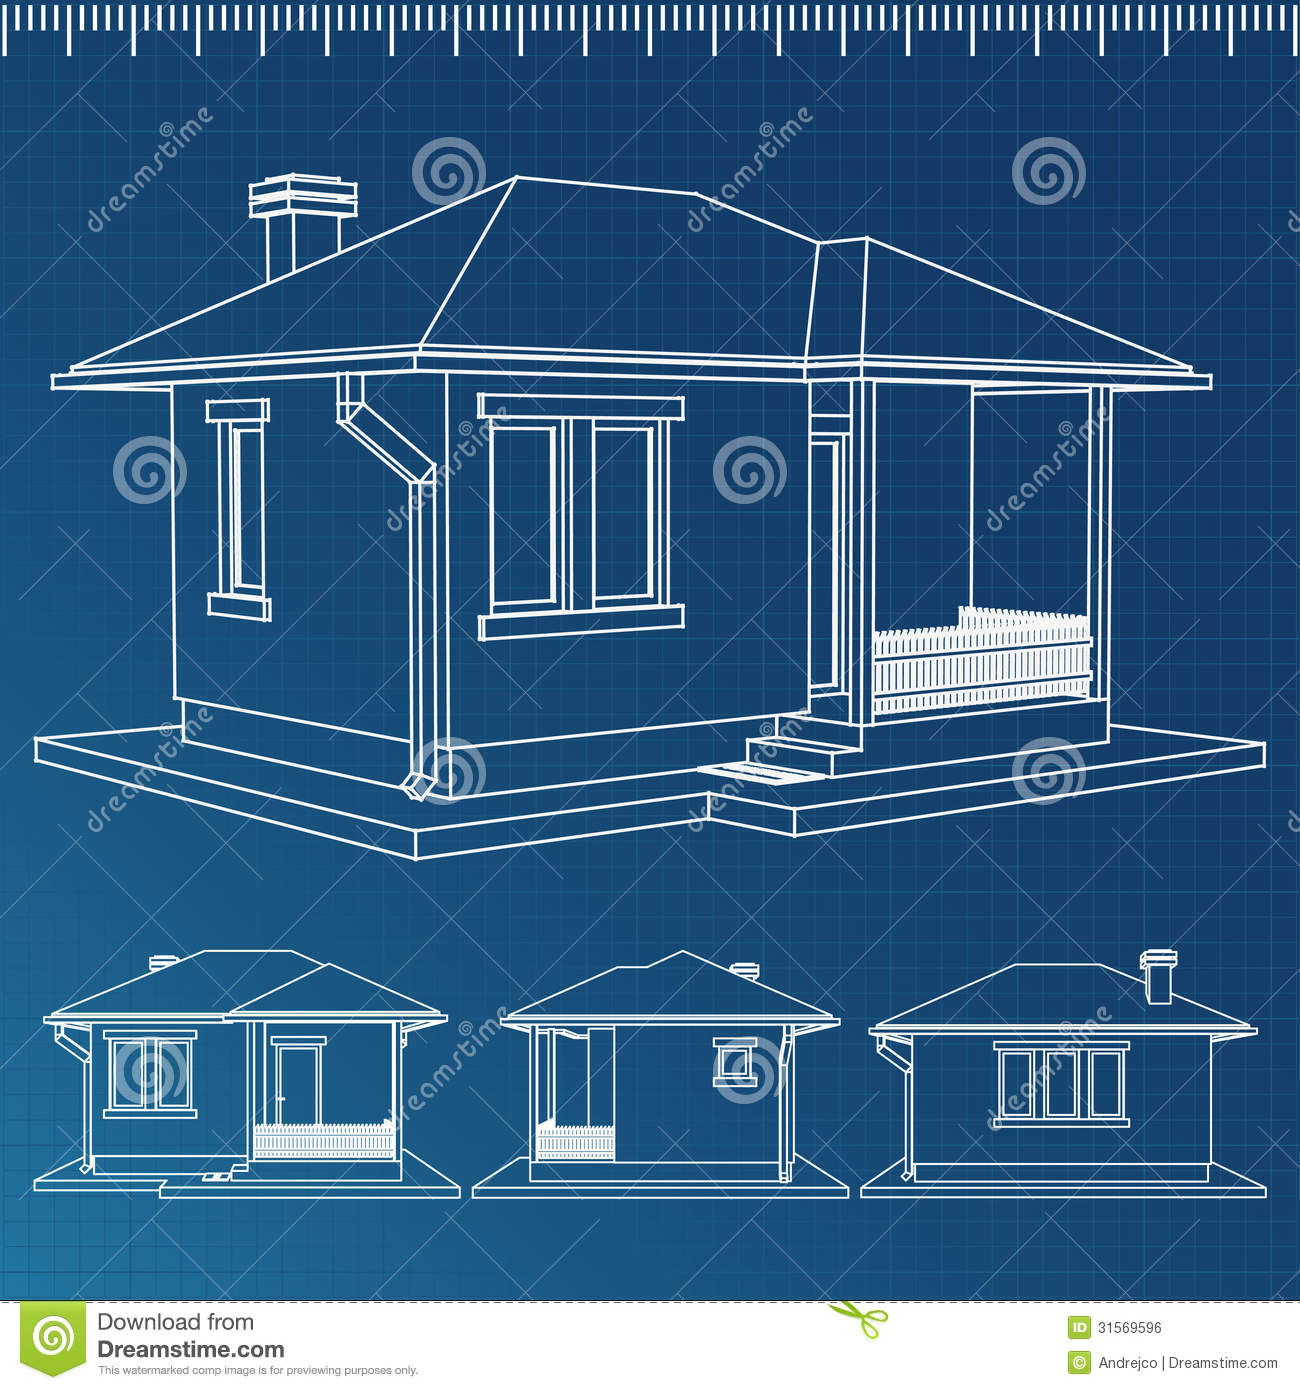 House blueprint royalty free stock image image 31569596 for How to find blueprints of a house